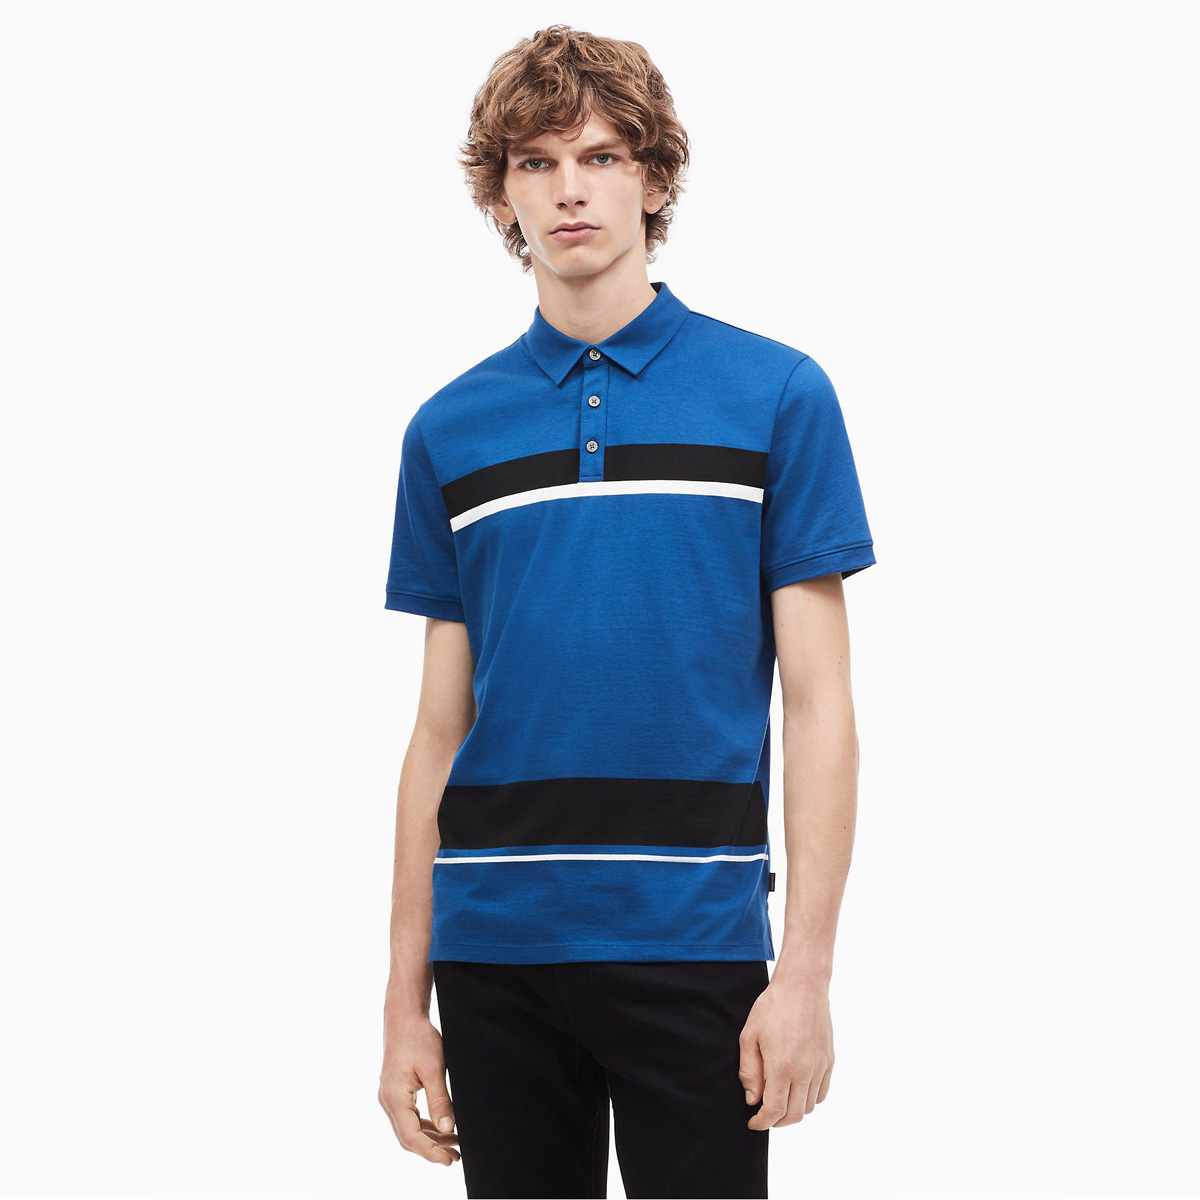 ao-polo-calvin-klein-regular-fit-225